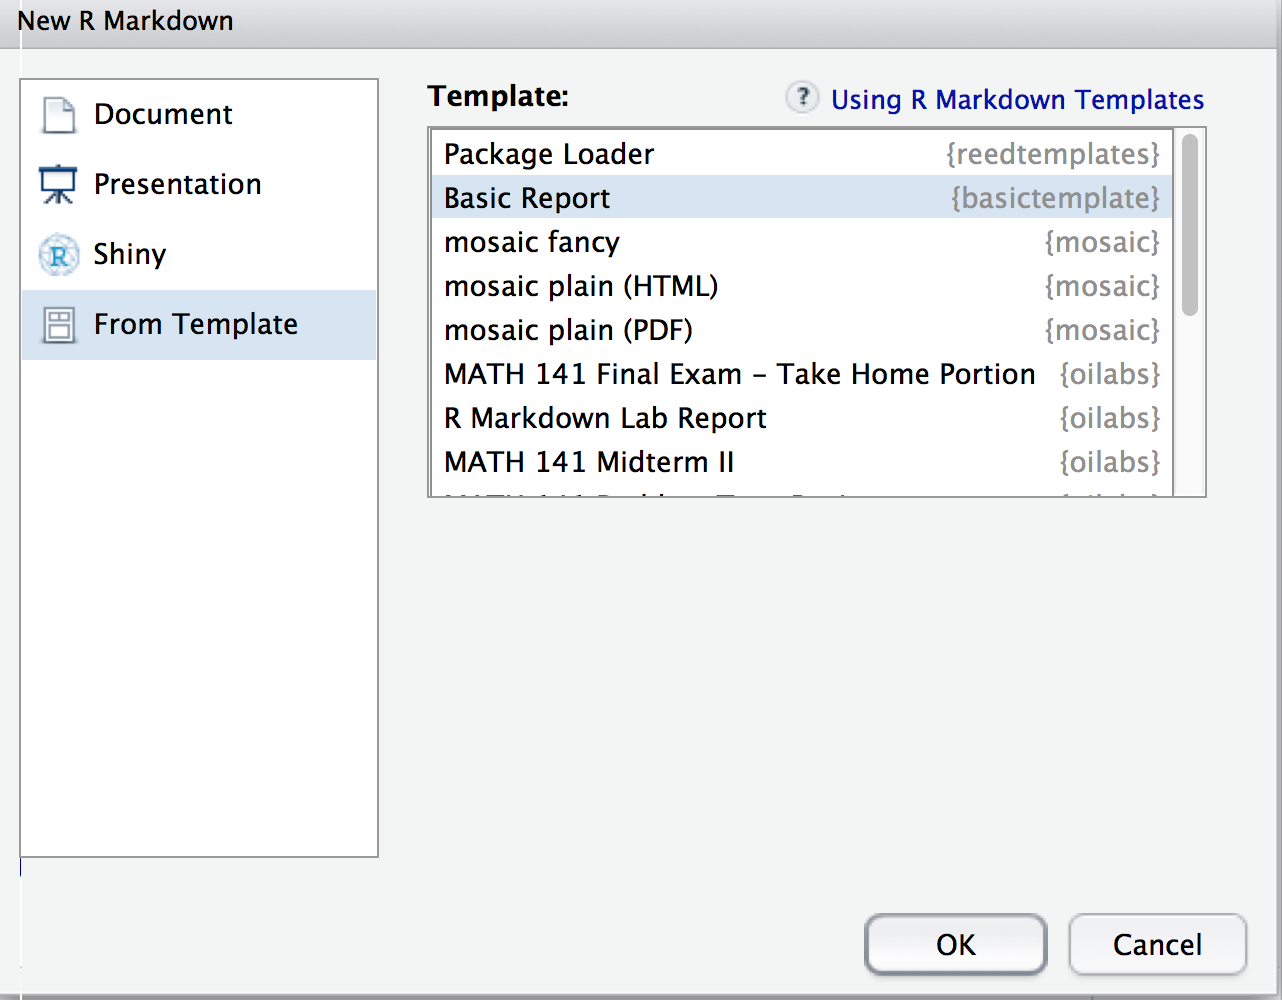 creating a basic template package in r